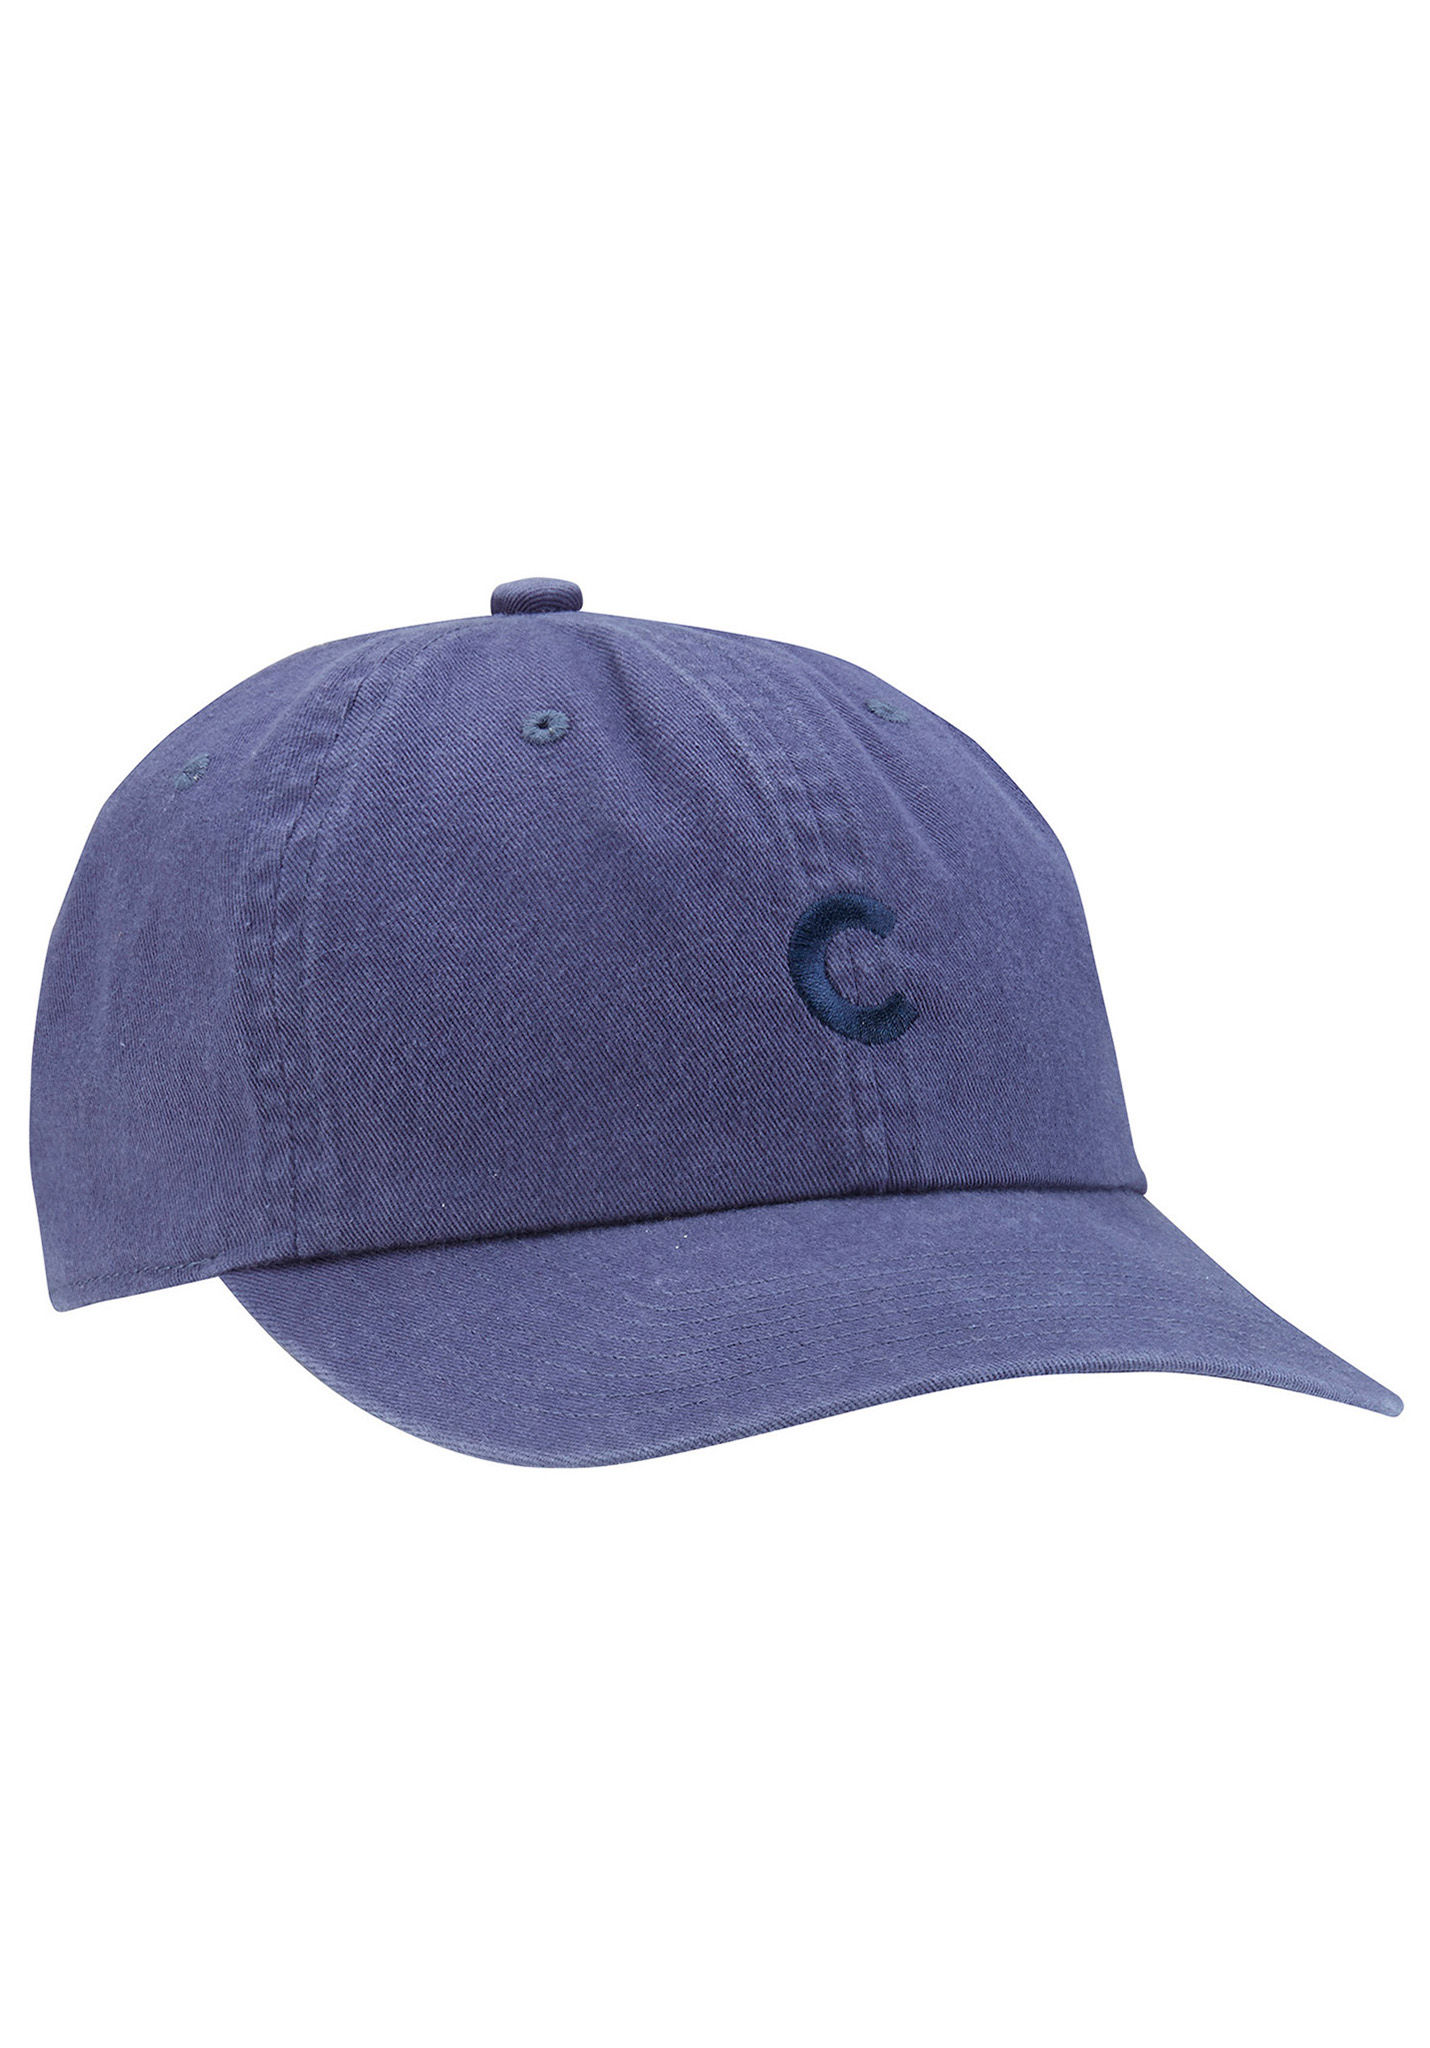 0e967997609 Coal The Anderson - Snapback Cap - Blue - Planet Sports